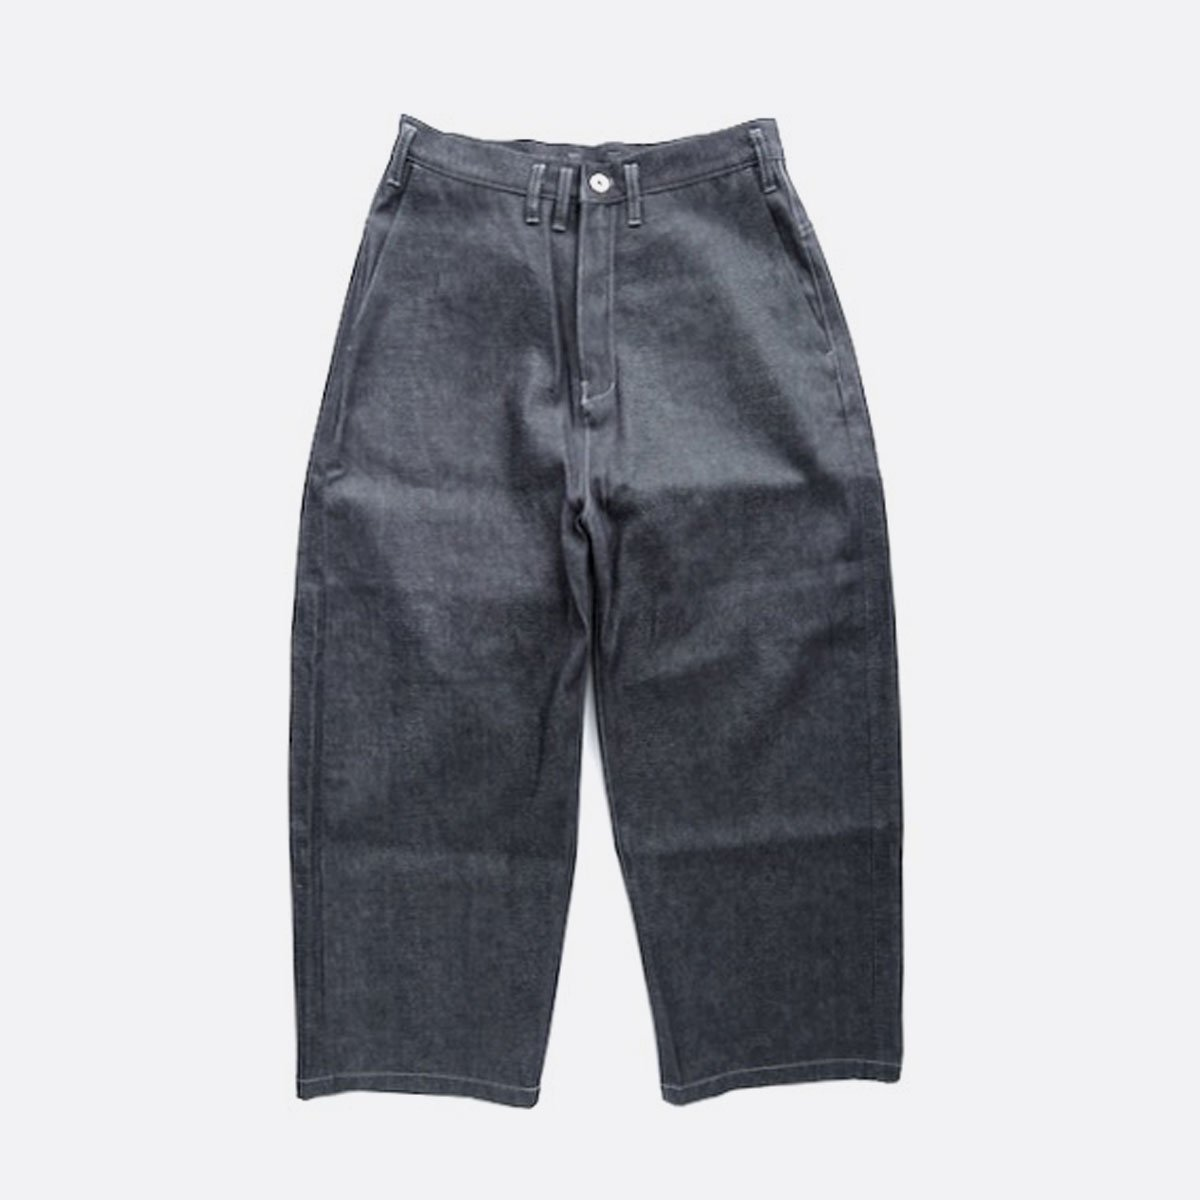 FIRMUM SUPIMA UNEVEN YARN BUGGY STRAIGHT SELVEDGE DENIM  (INDIGO)